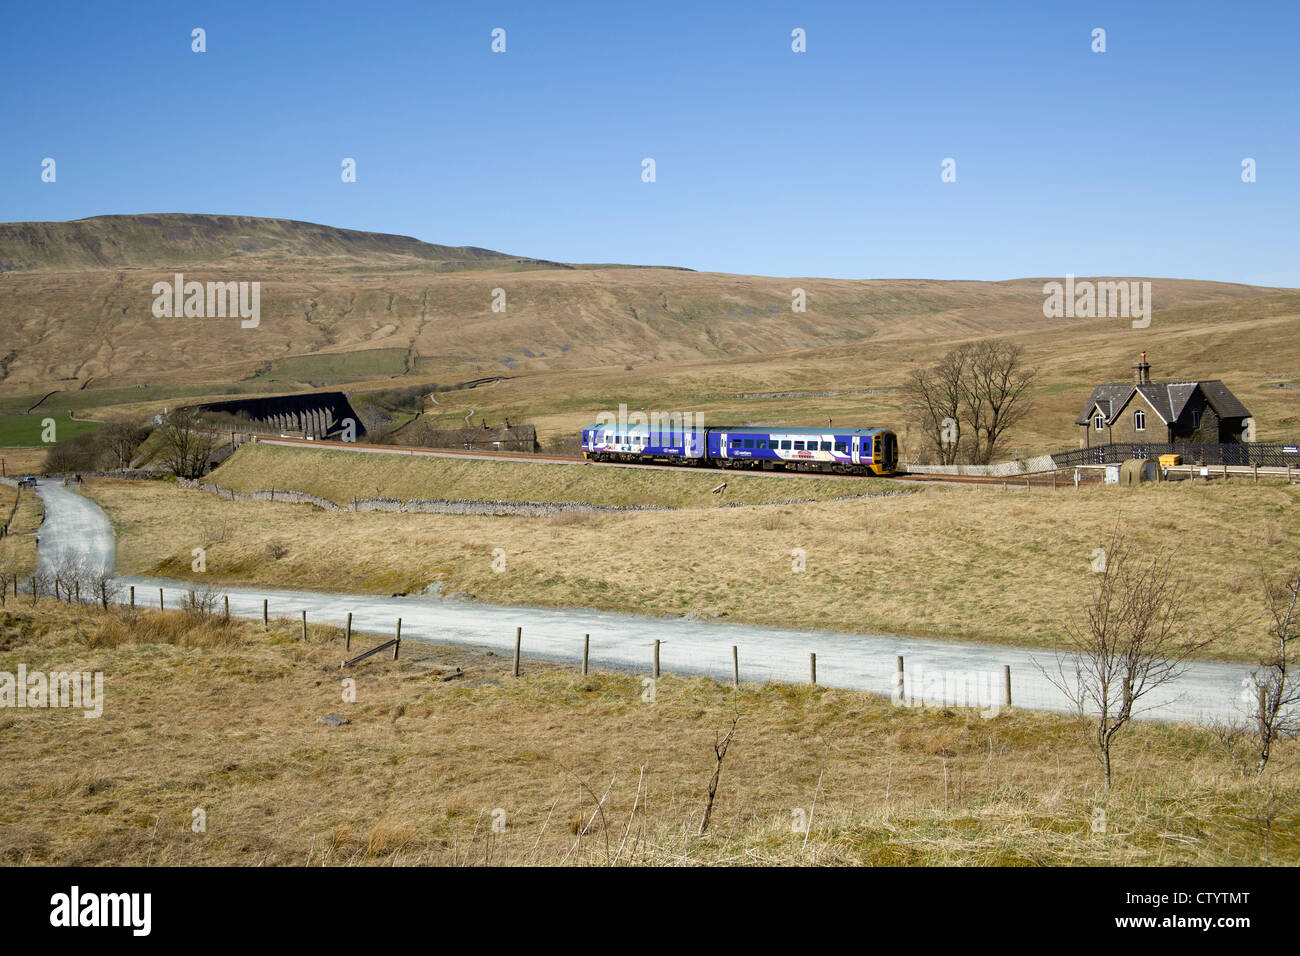 Northern Rail class 158, Ribblehead, North Yorkshire. Monday 26th March 2012. - Stock Image